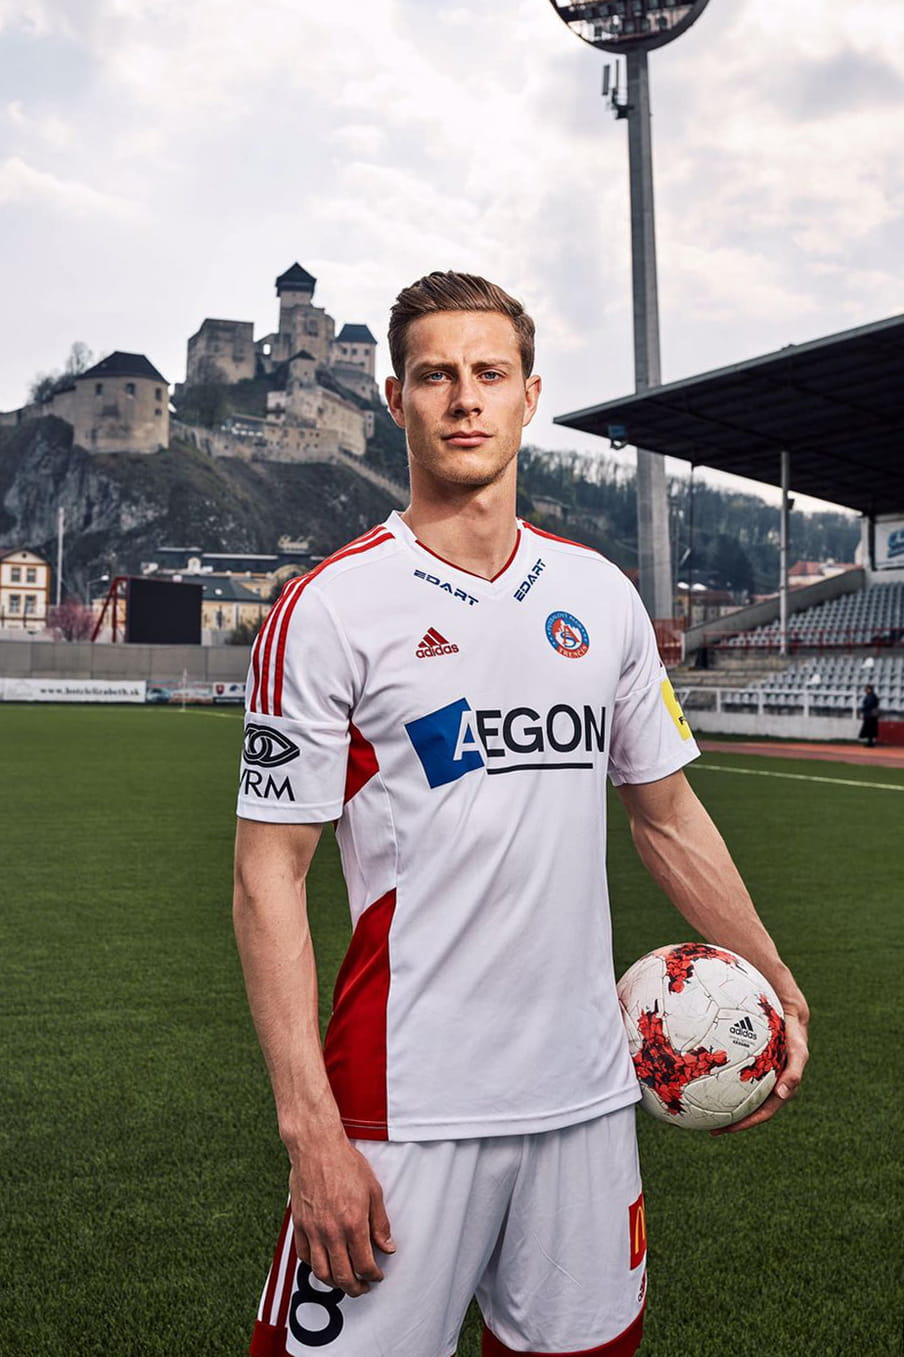 James Lawrence on the pitch of Slovenian football  club Tencin, posing for the camera with a ball loosely in his left hand. In the background a small castle on a hill top can be seen overlooking the stadium.